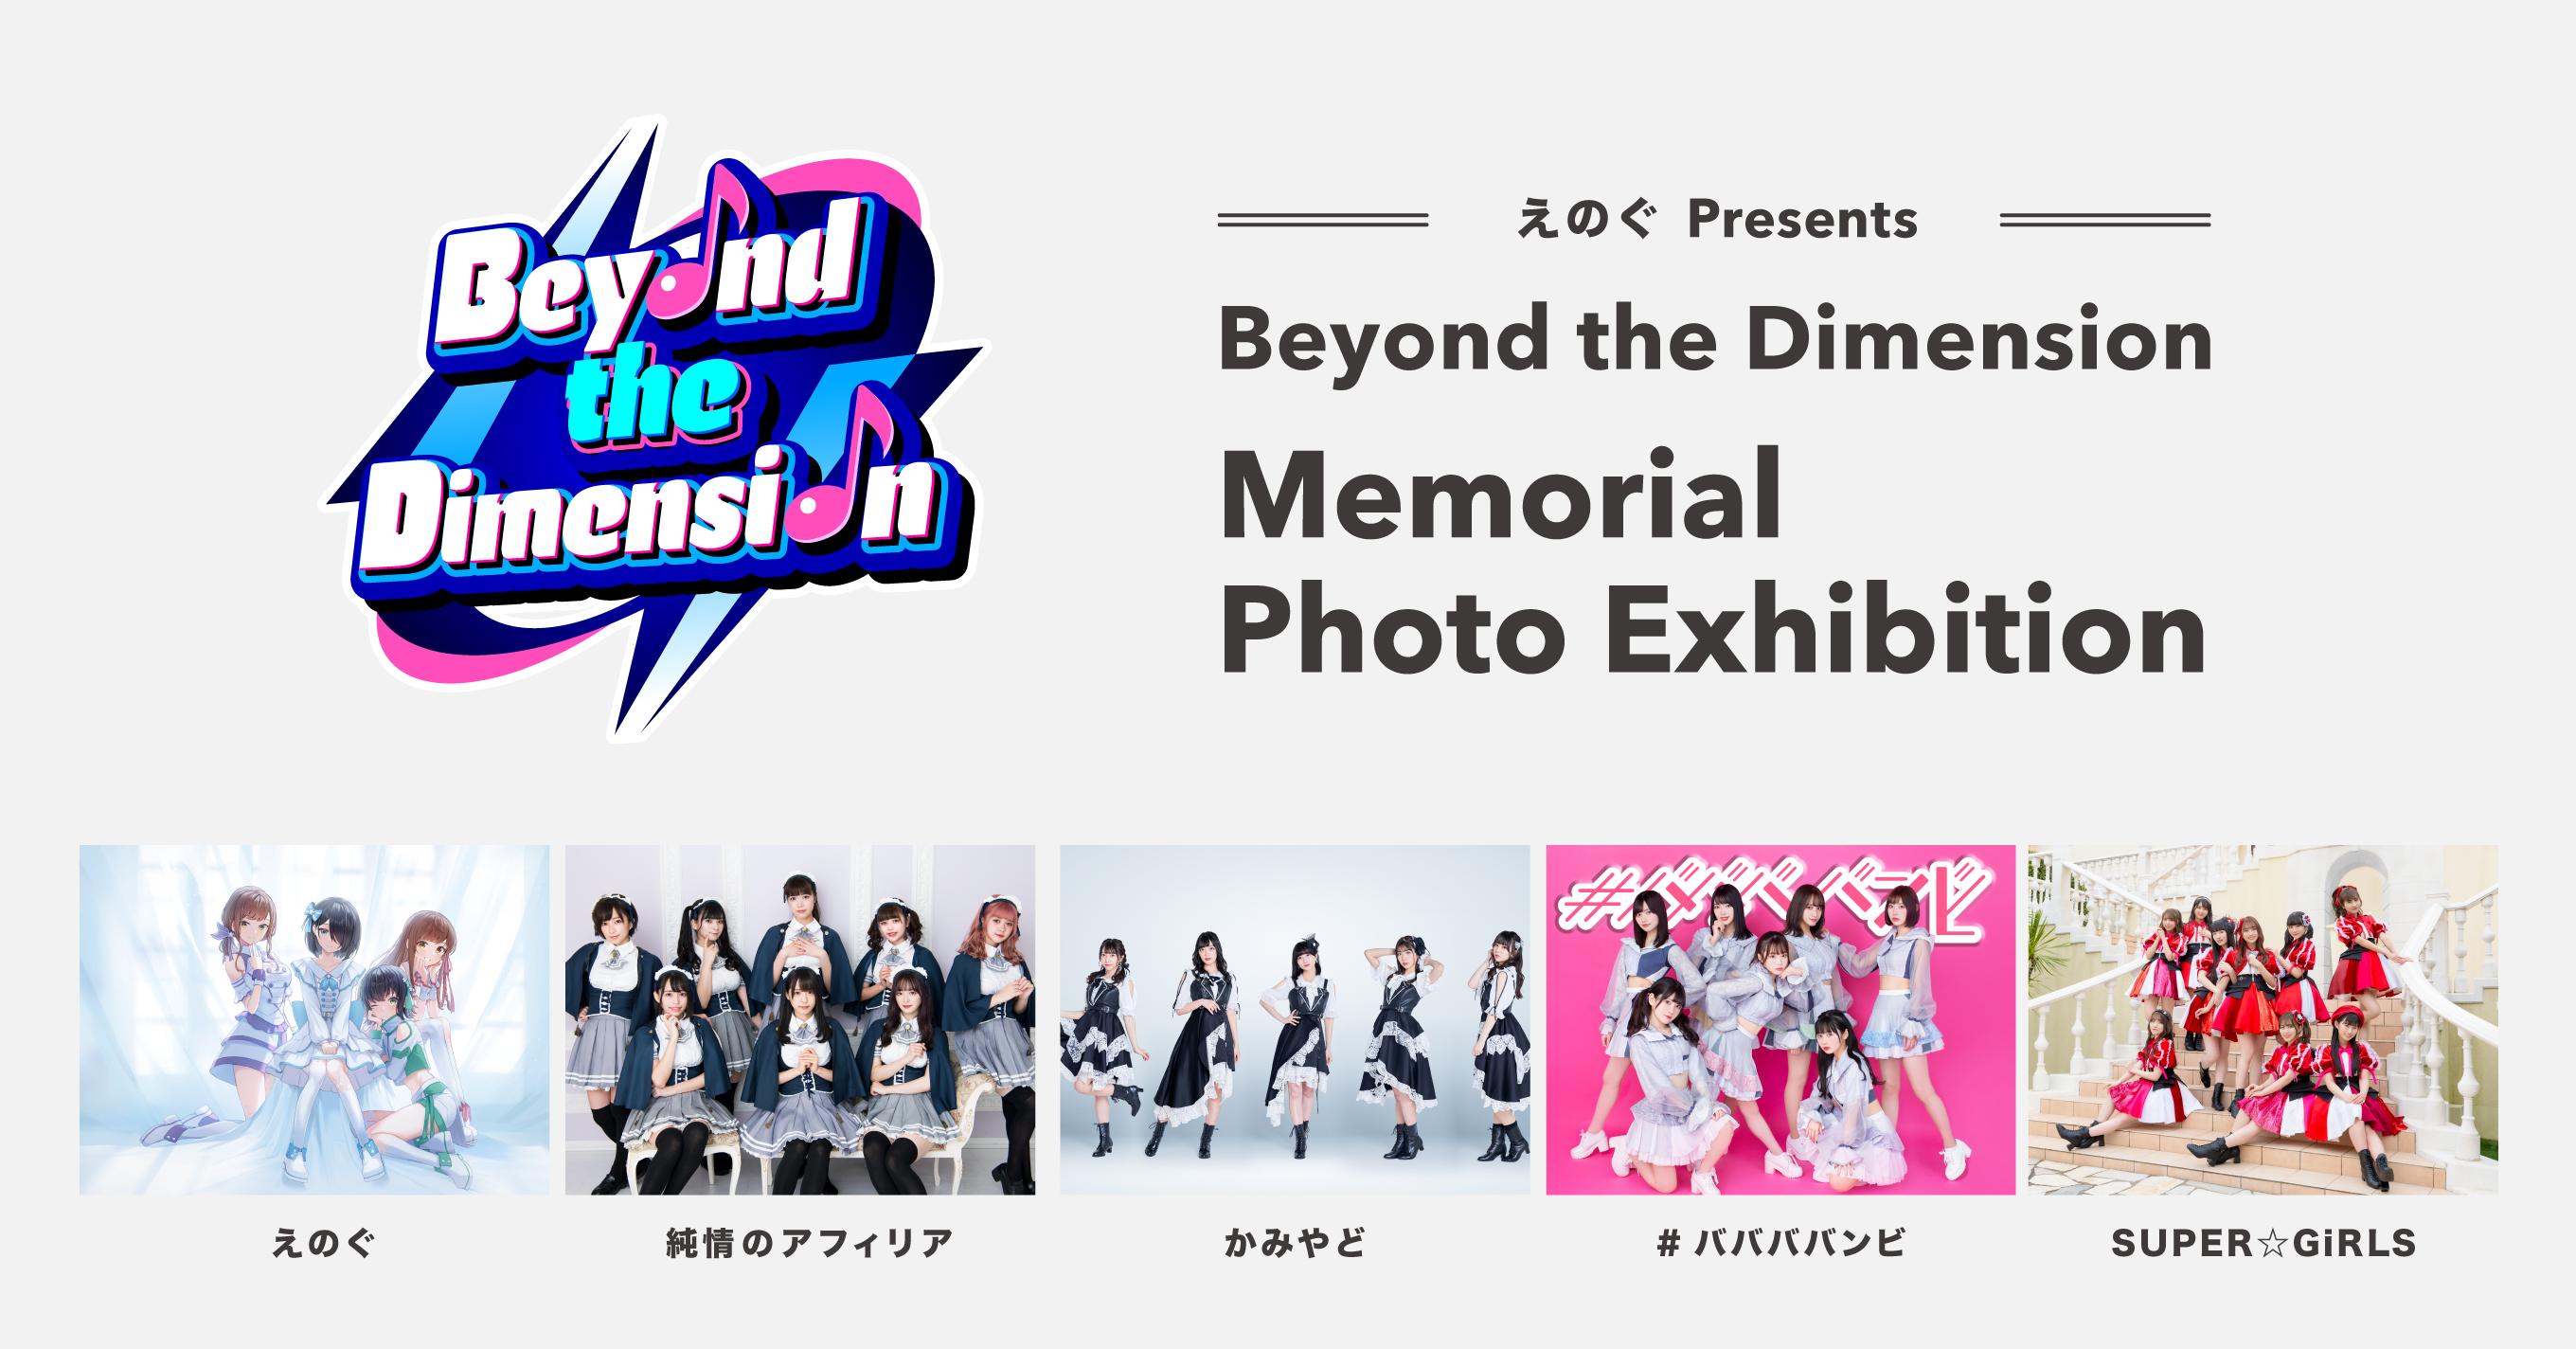 Beyond the Dimension Memorial Photo Exhibition